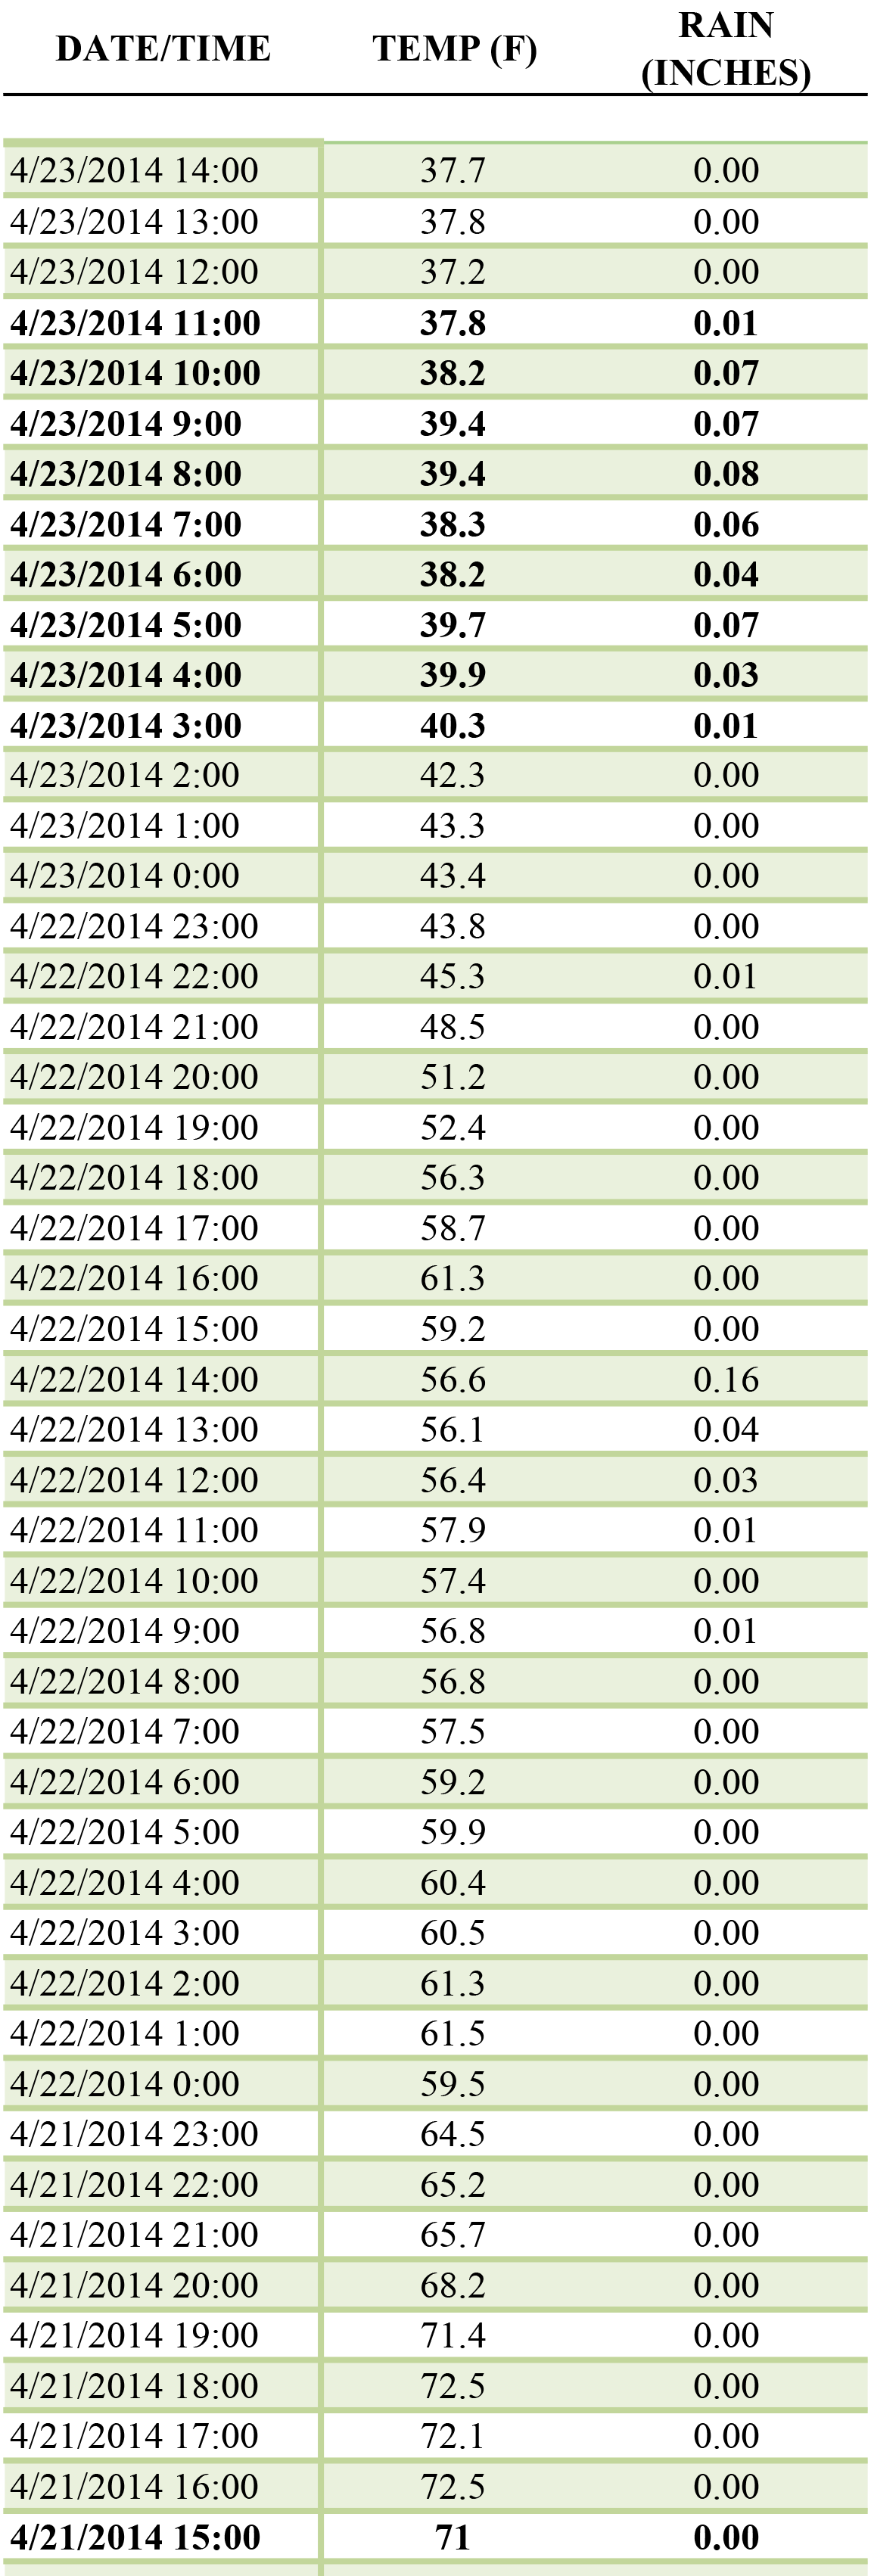 Table 4. Hourly temperature and hourly precipitation during the 48 hours after planting two corn hybrids at five planting depths on April 21 at the Aurora Research Farm (read the table from the bottom to the top to track temperature and precipitation during the first 48 hours after planting).